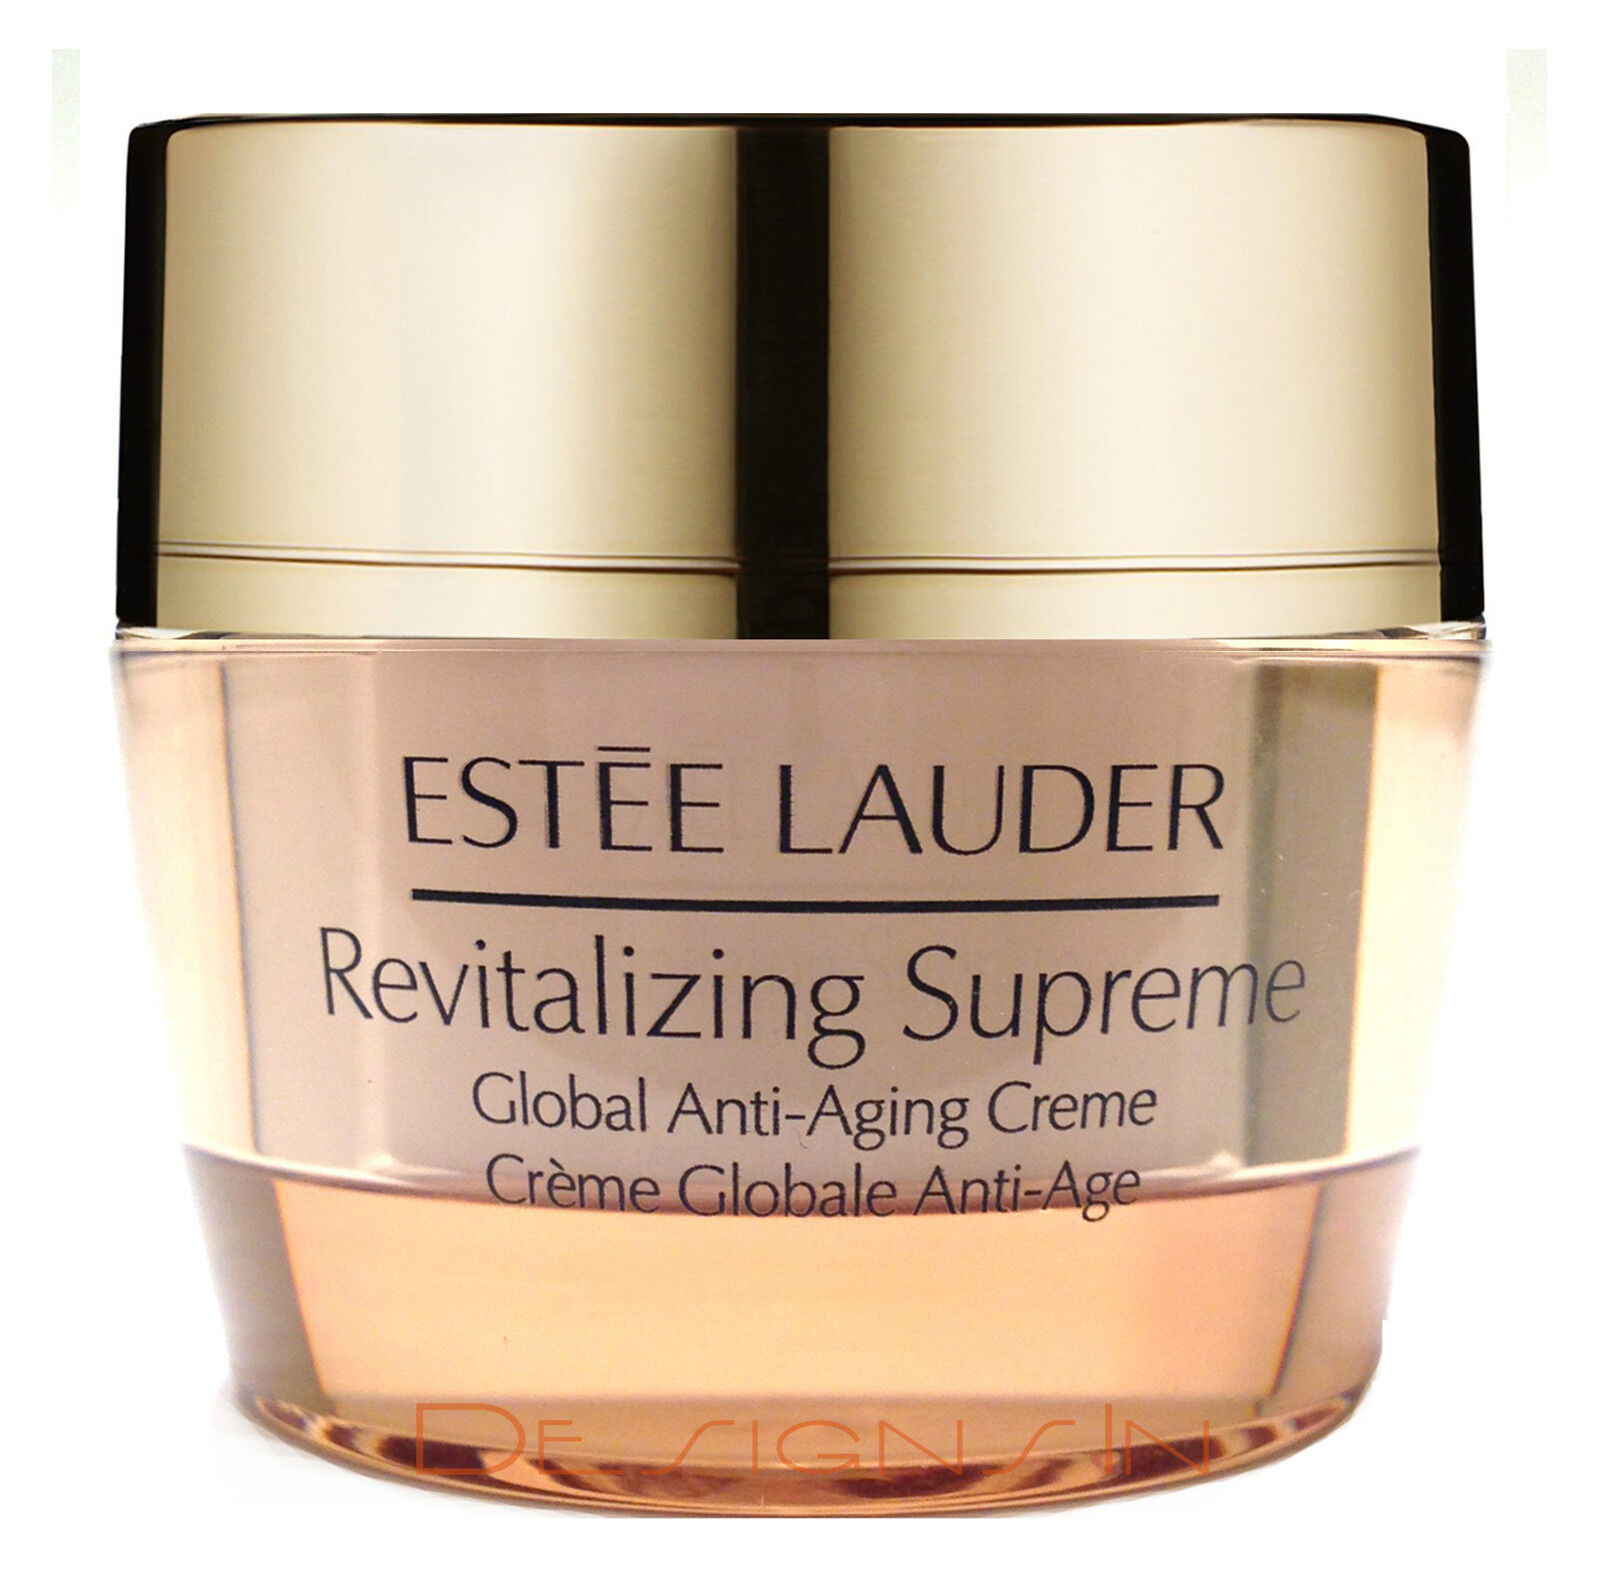 estee lauder revitalizing supreme global anti aging creme 0 5 oz travel size 27131826705 ebay. Black Bedroom Furniture Sets. Home Design Ideas